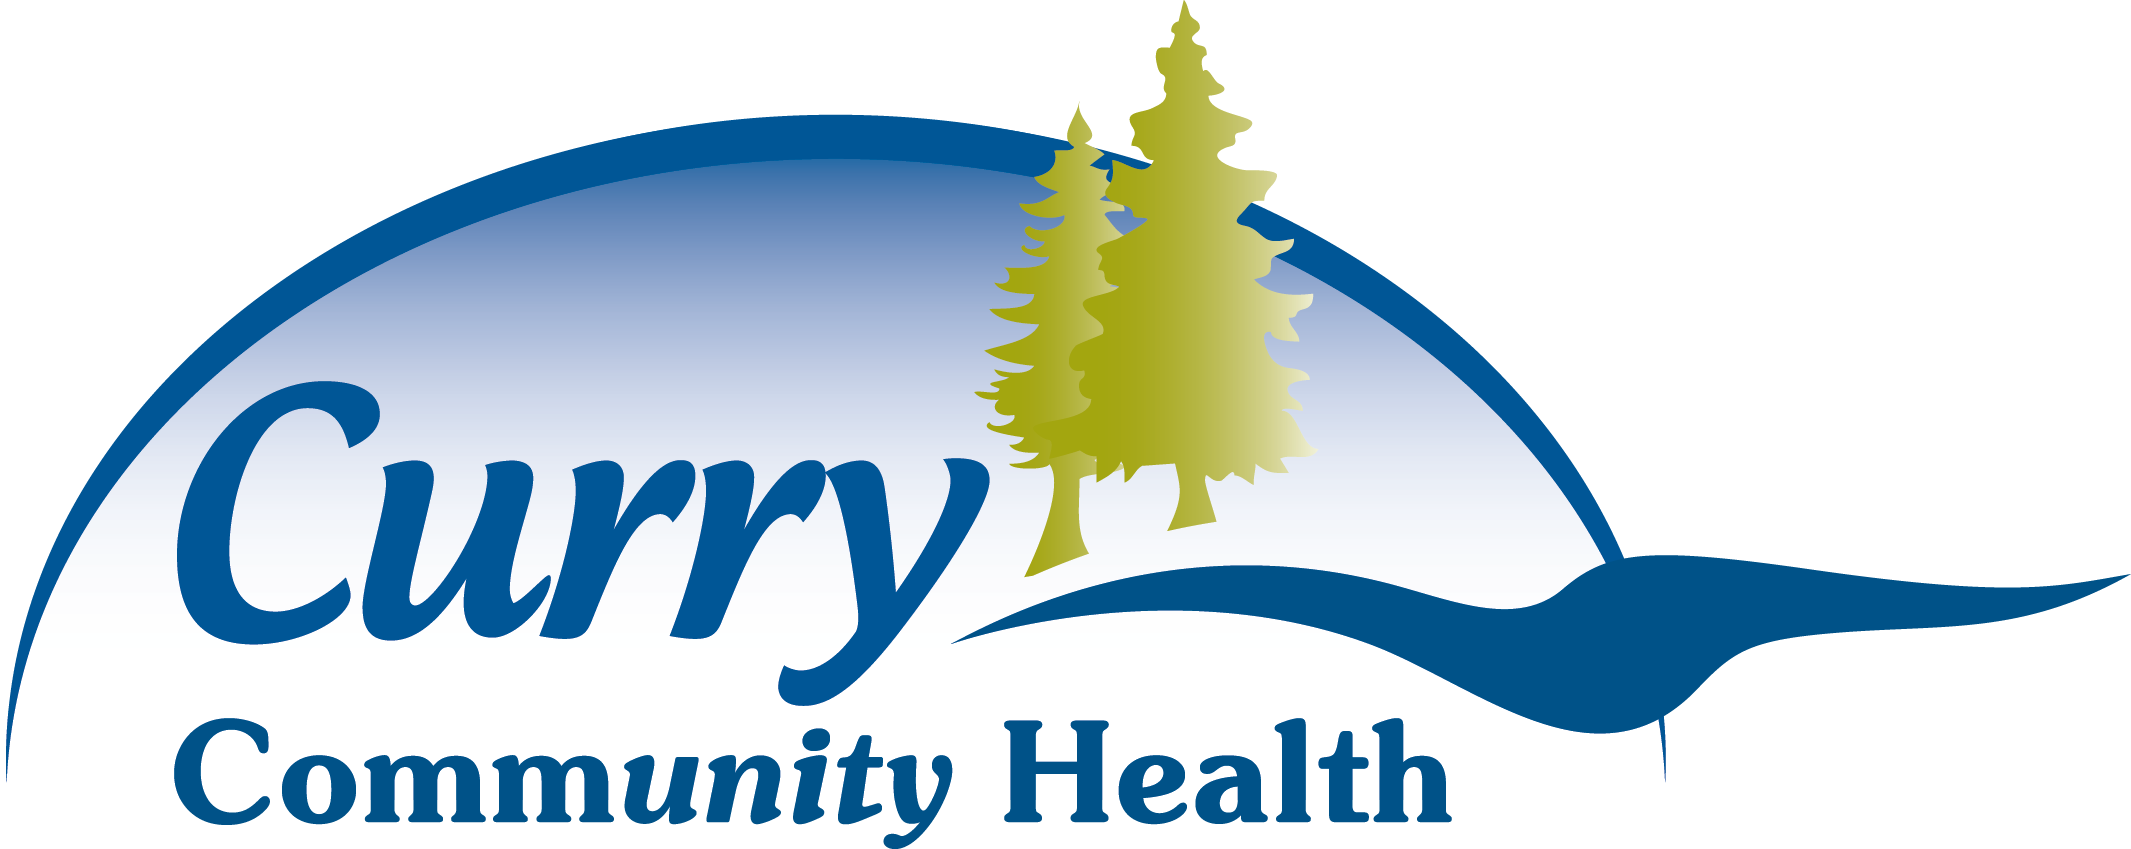 Curry Community Health, Oregon